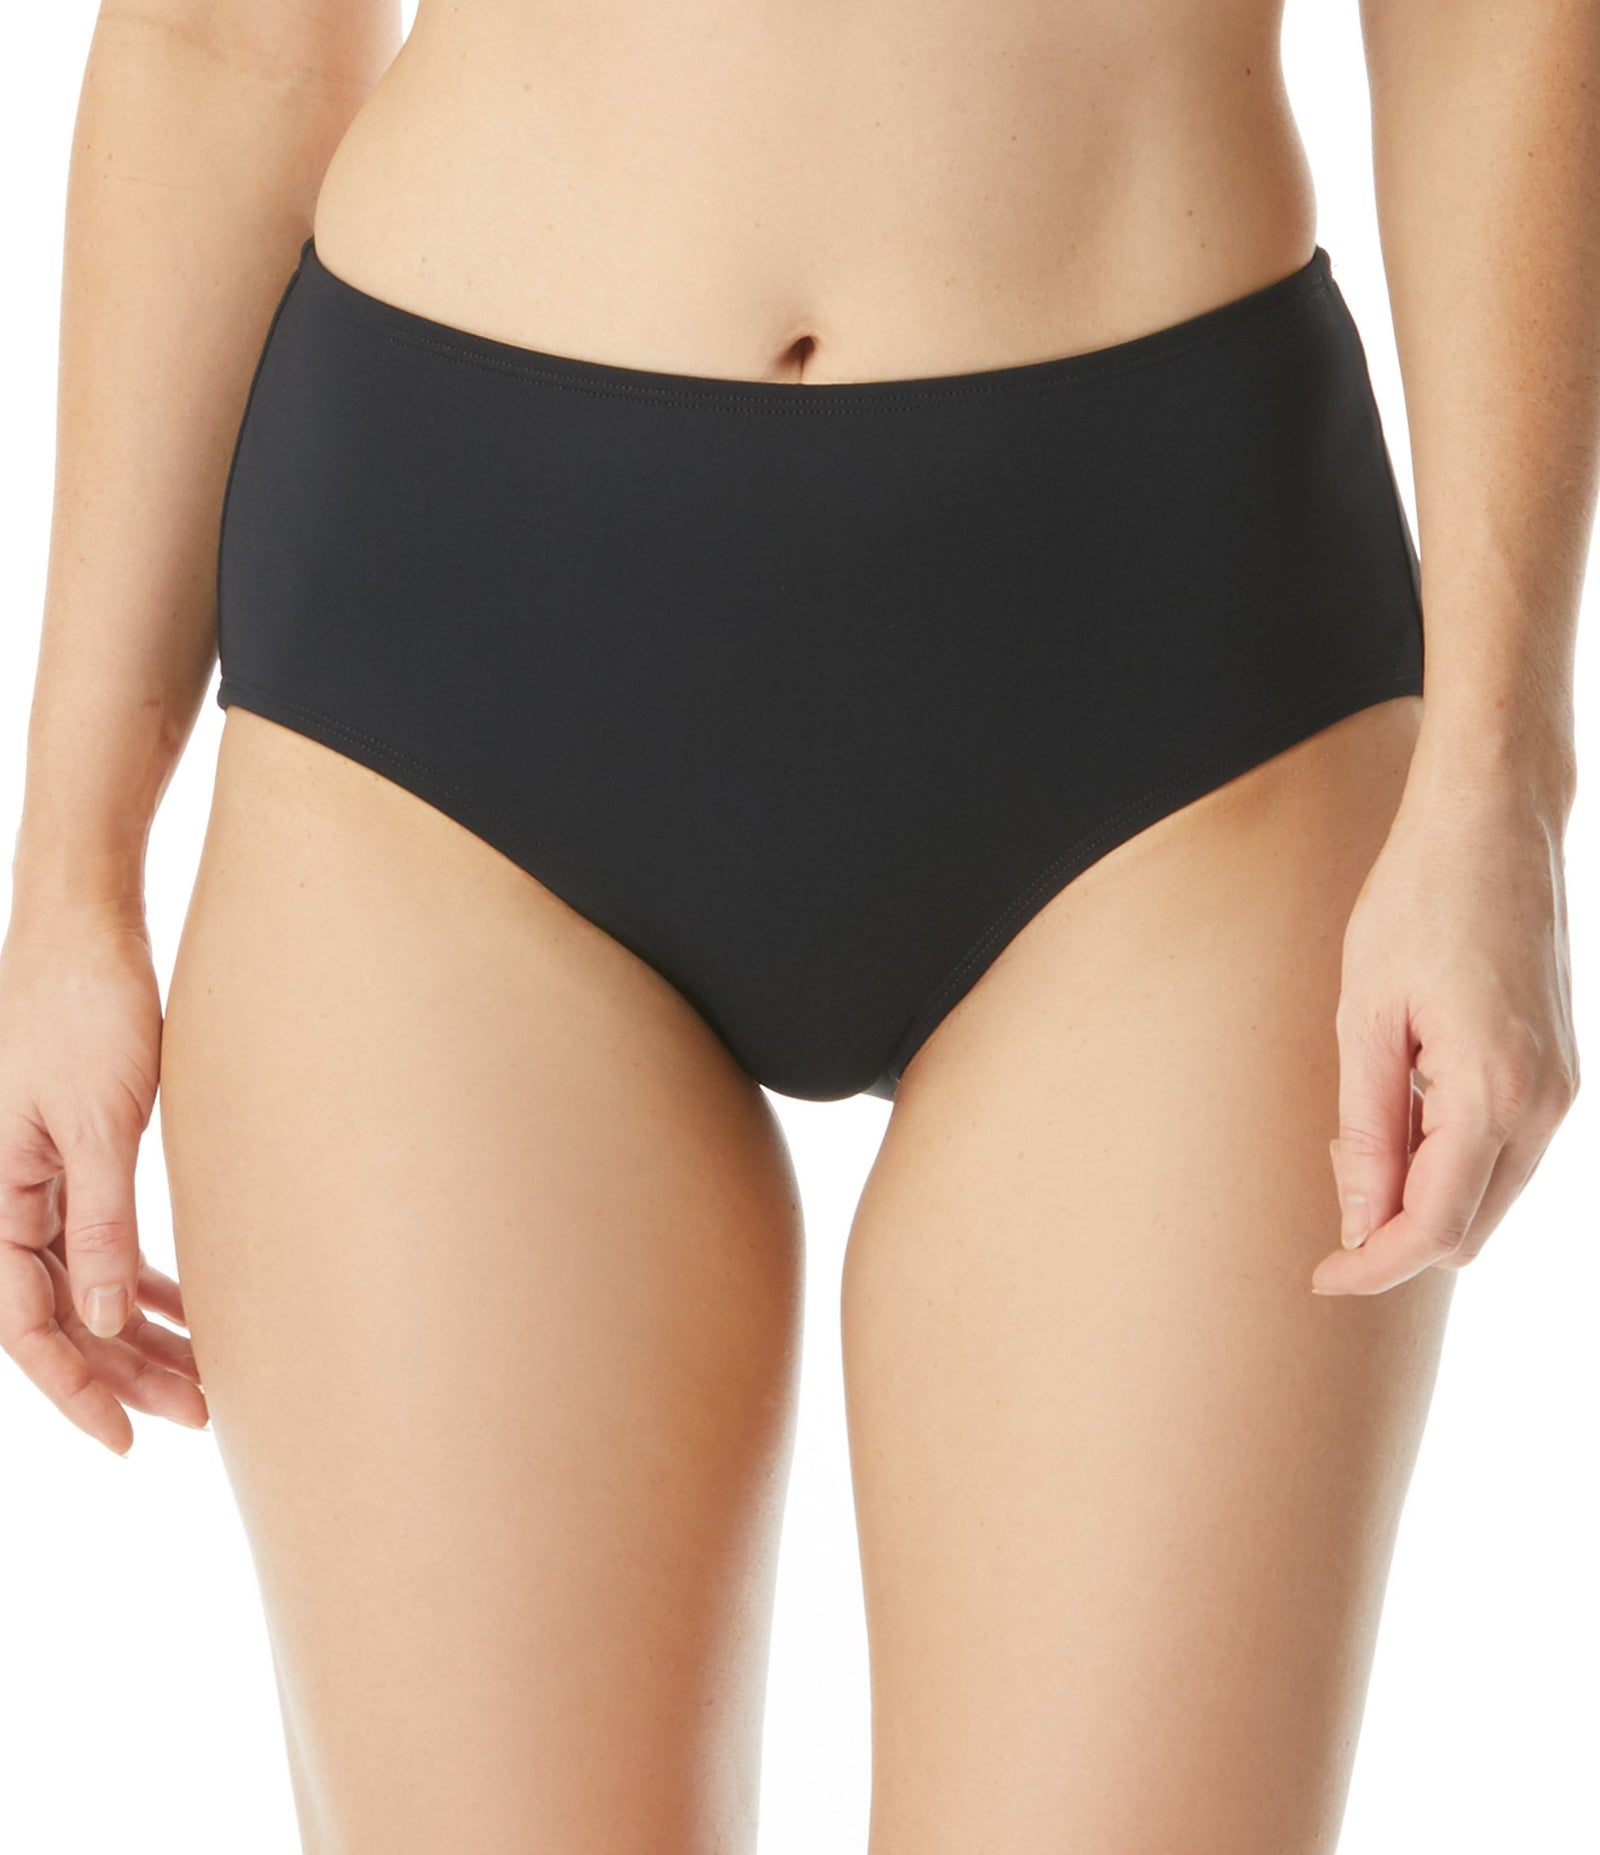 High Waisted Bikini Bottom Full coverage 50+ UPF 4 Way Stretch Soft Touch Comfort Fabric with Lycra® Chlorine Resistant Swimsuit Fabric: 85% Nylon/15% LYCRA® XTRA LIFE™® Hand Wash Cold, Line Dry Product Number: H58433